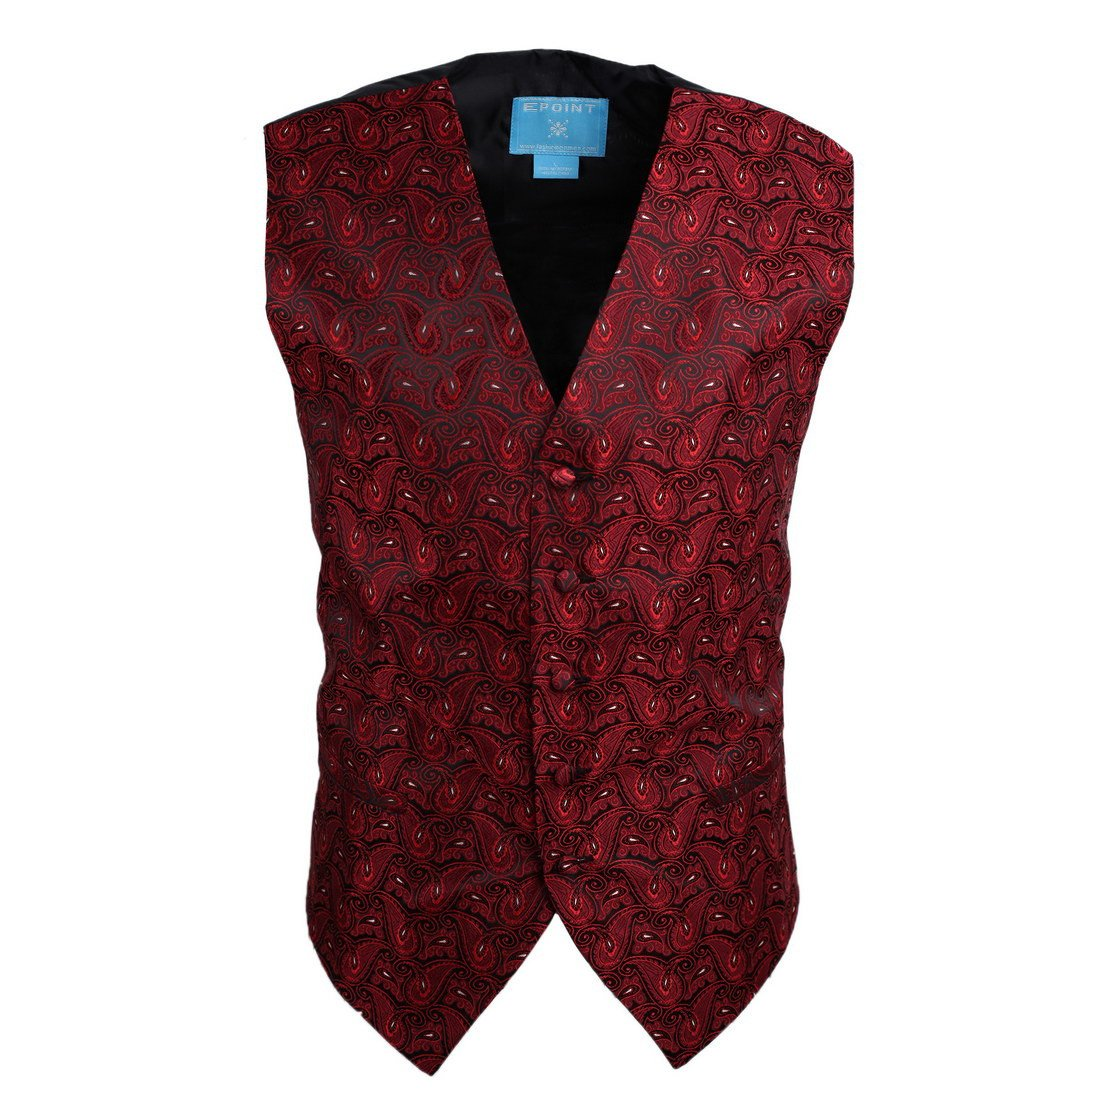 EGC1B08D-XL Red Black Patterned Love For Meeting Waistcoat Woven Microfiber Young Gentlemen X-Large Vest By Epoint